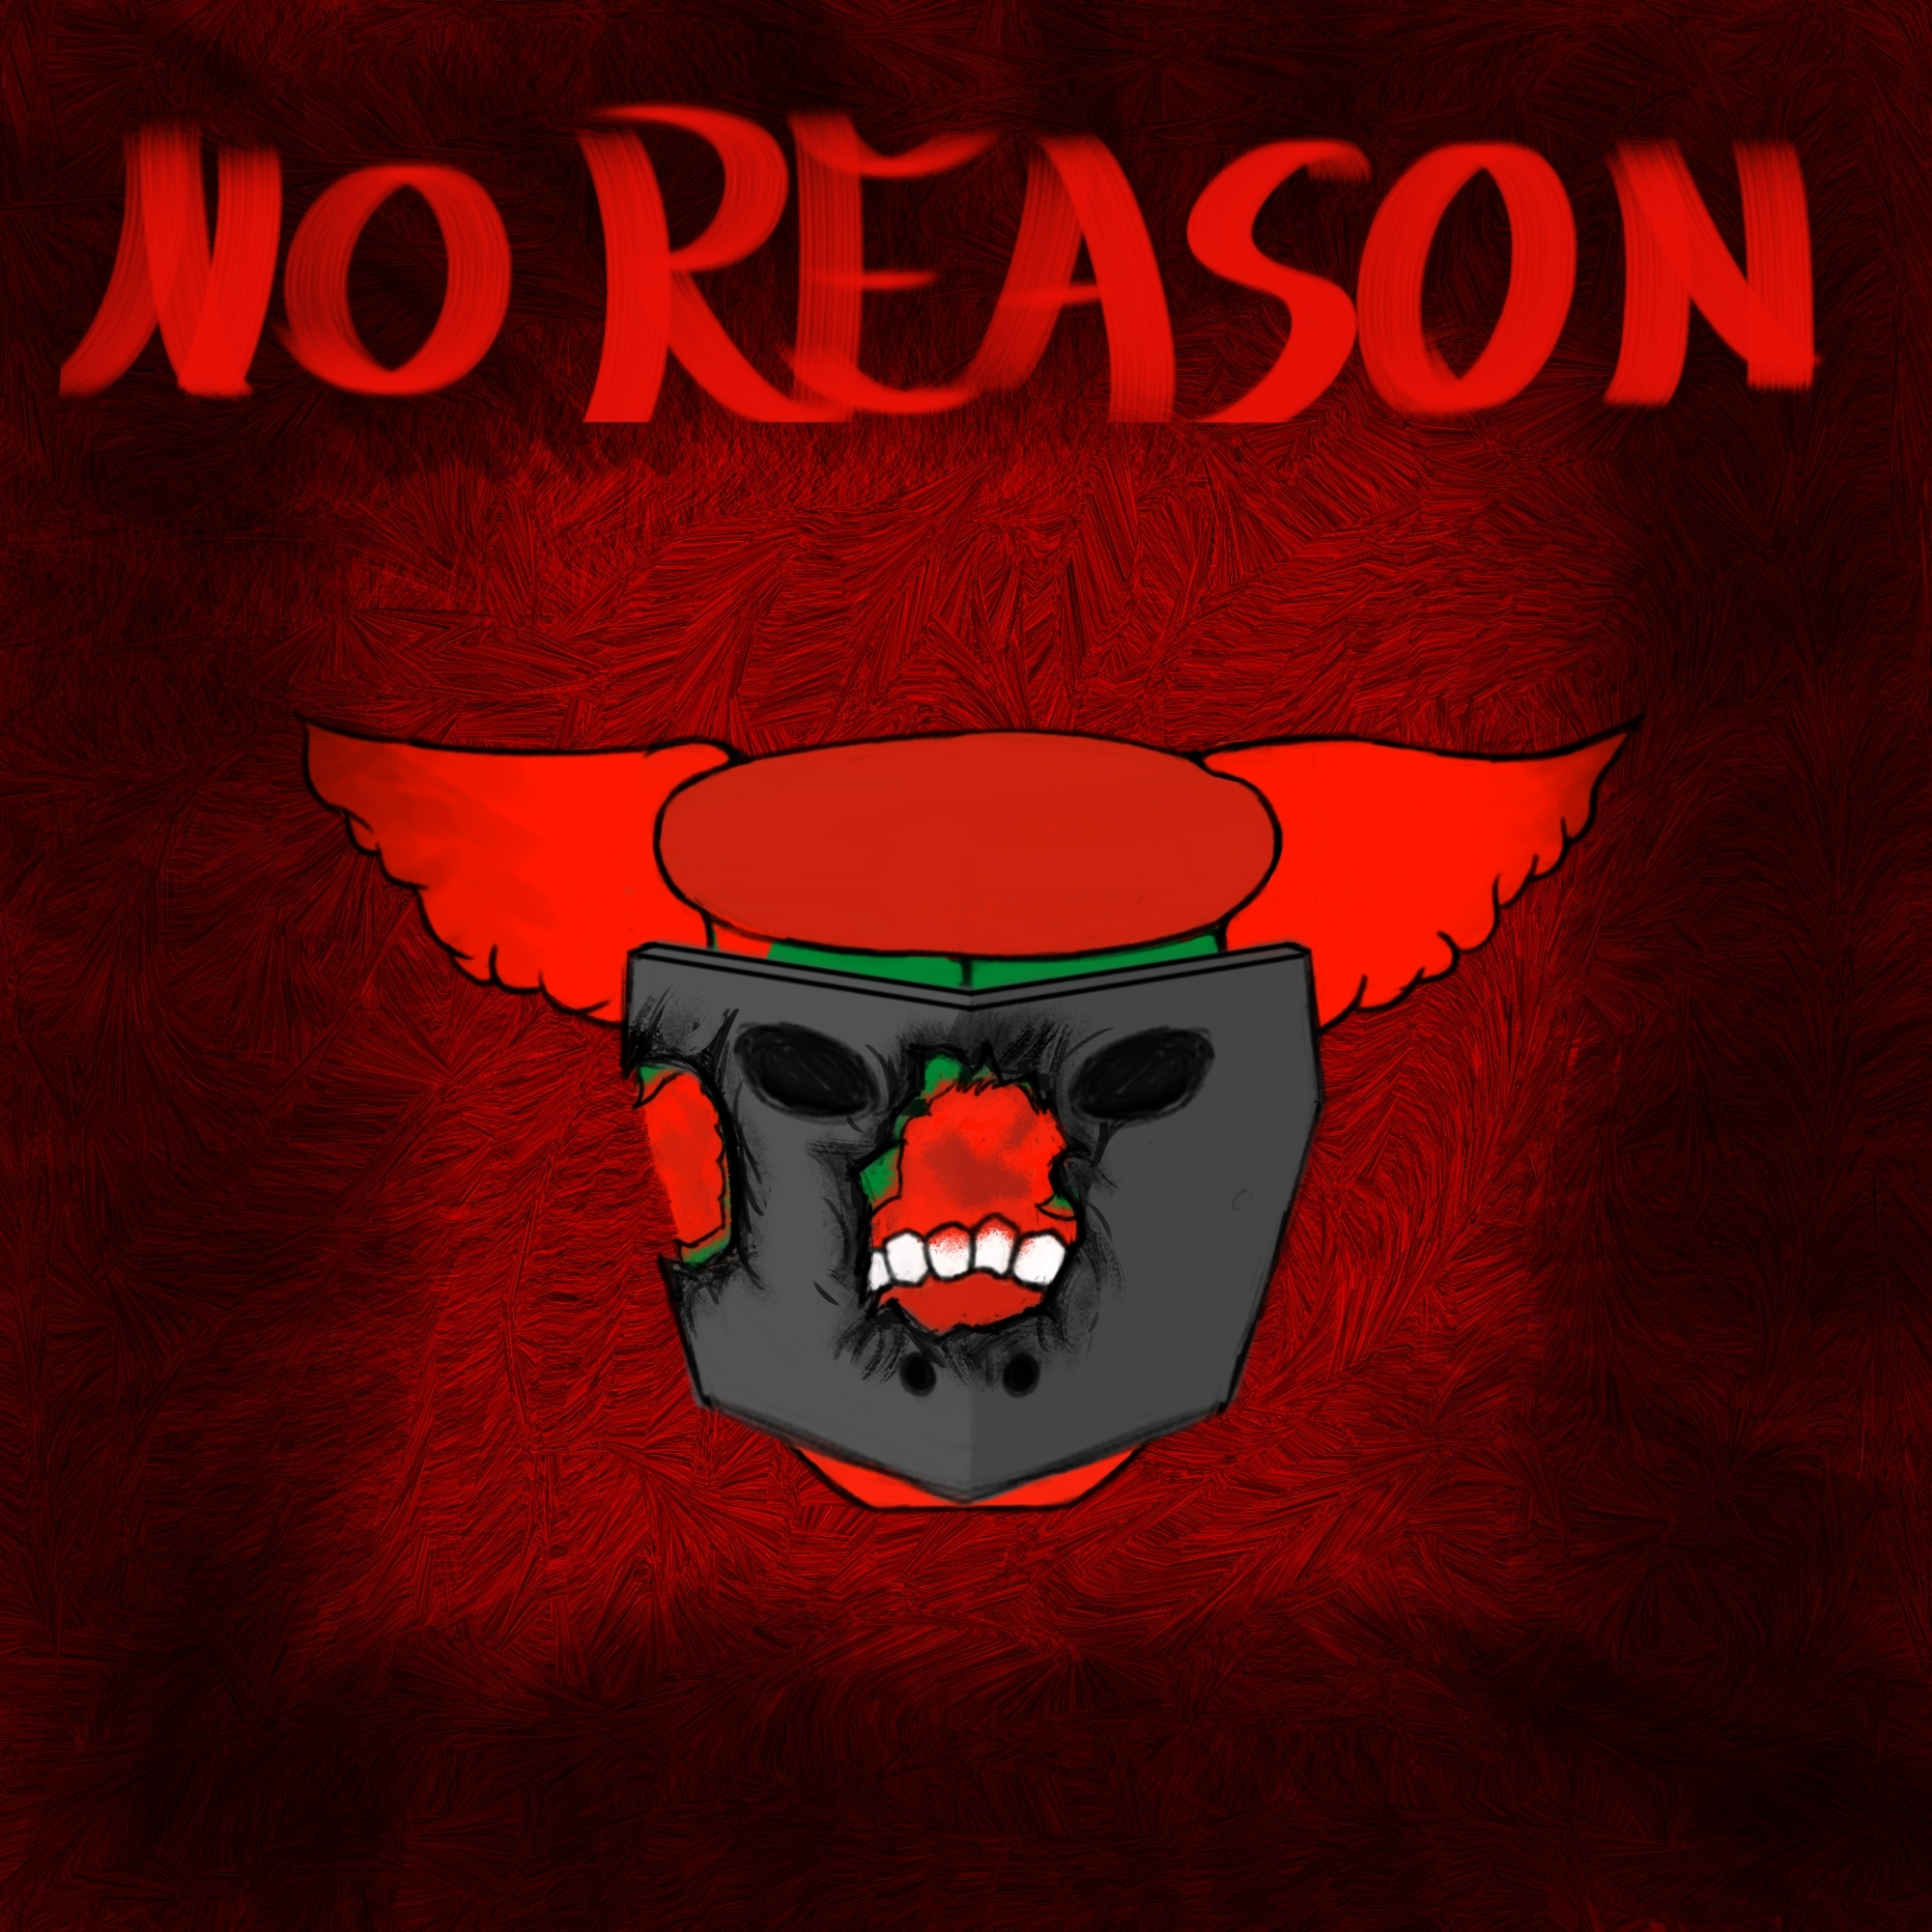 Mask of No Reason: CAN7 ST0P 7H3 MADN355 (Madness Day 2020)